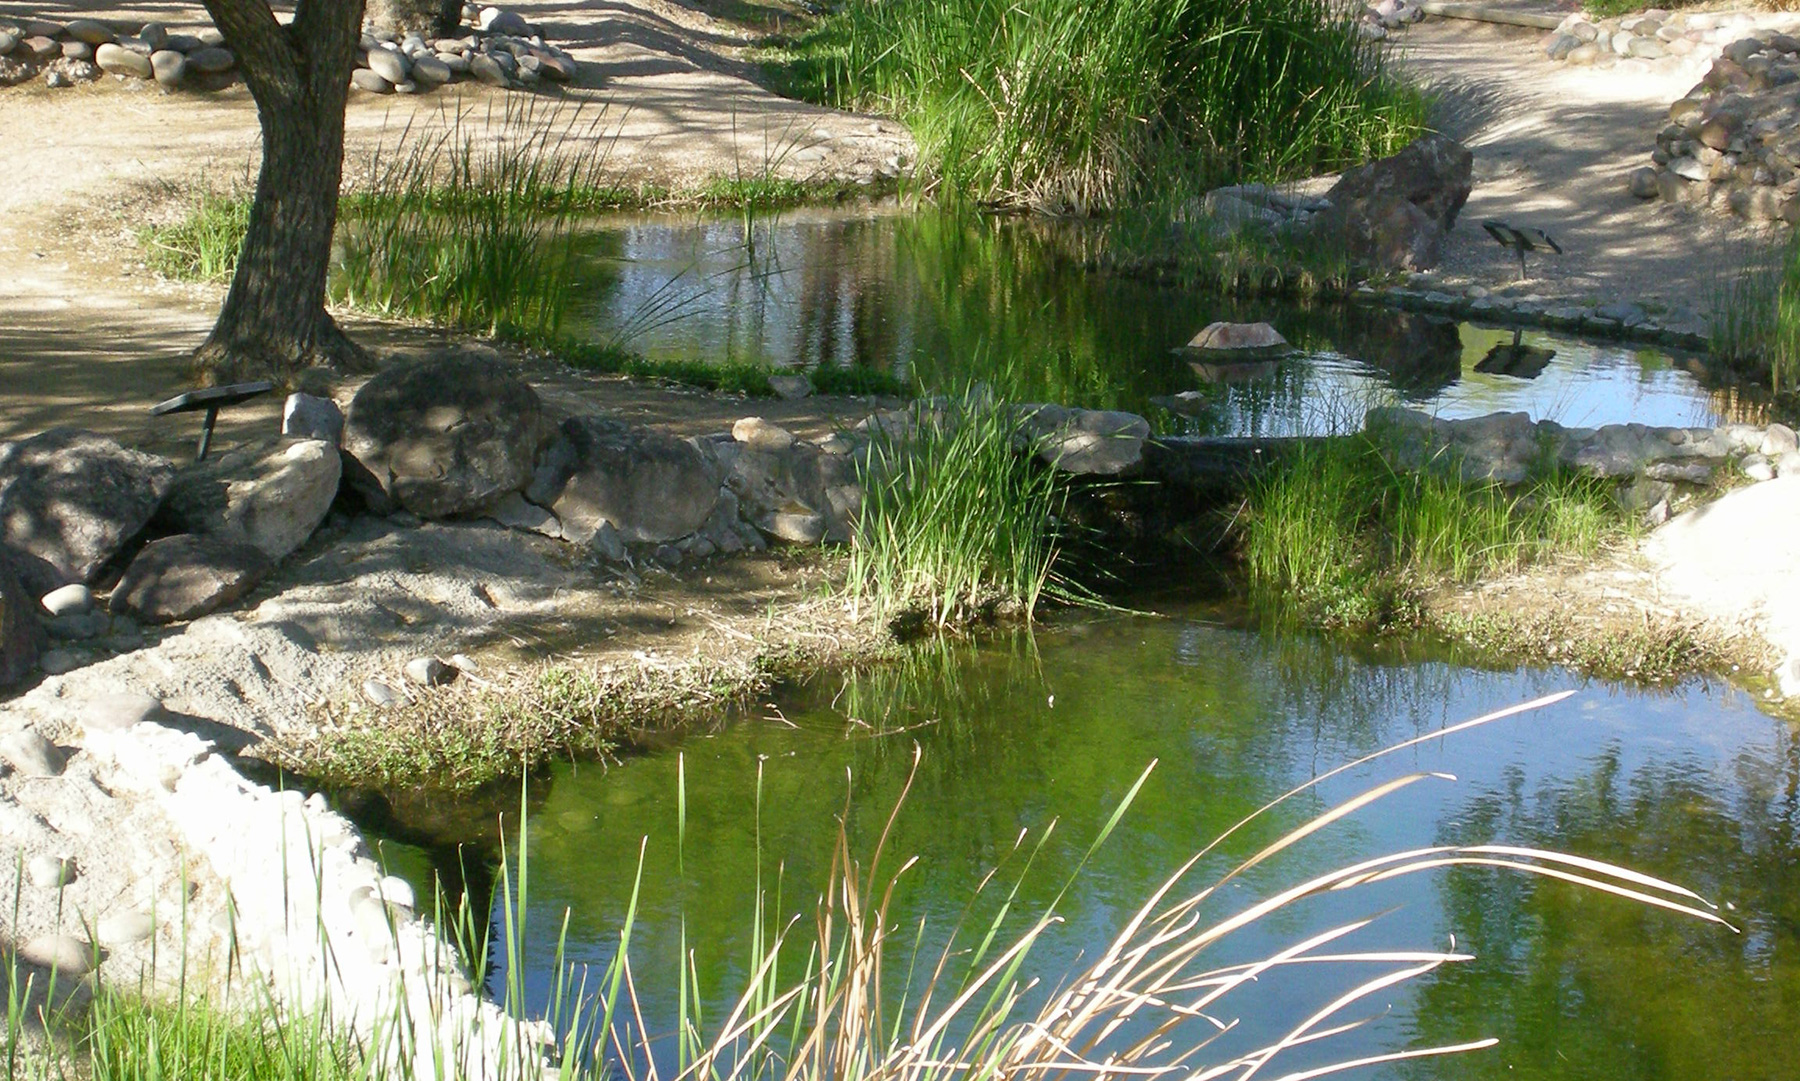 Pond Wallpaper Hd Oasis In The Desert Wallpapers High Quality Download Free